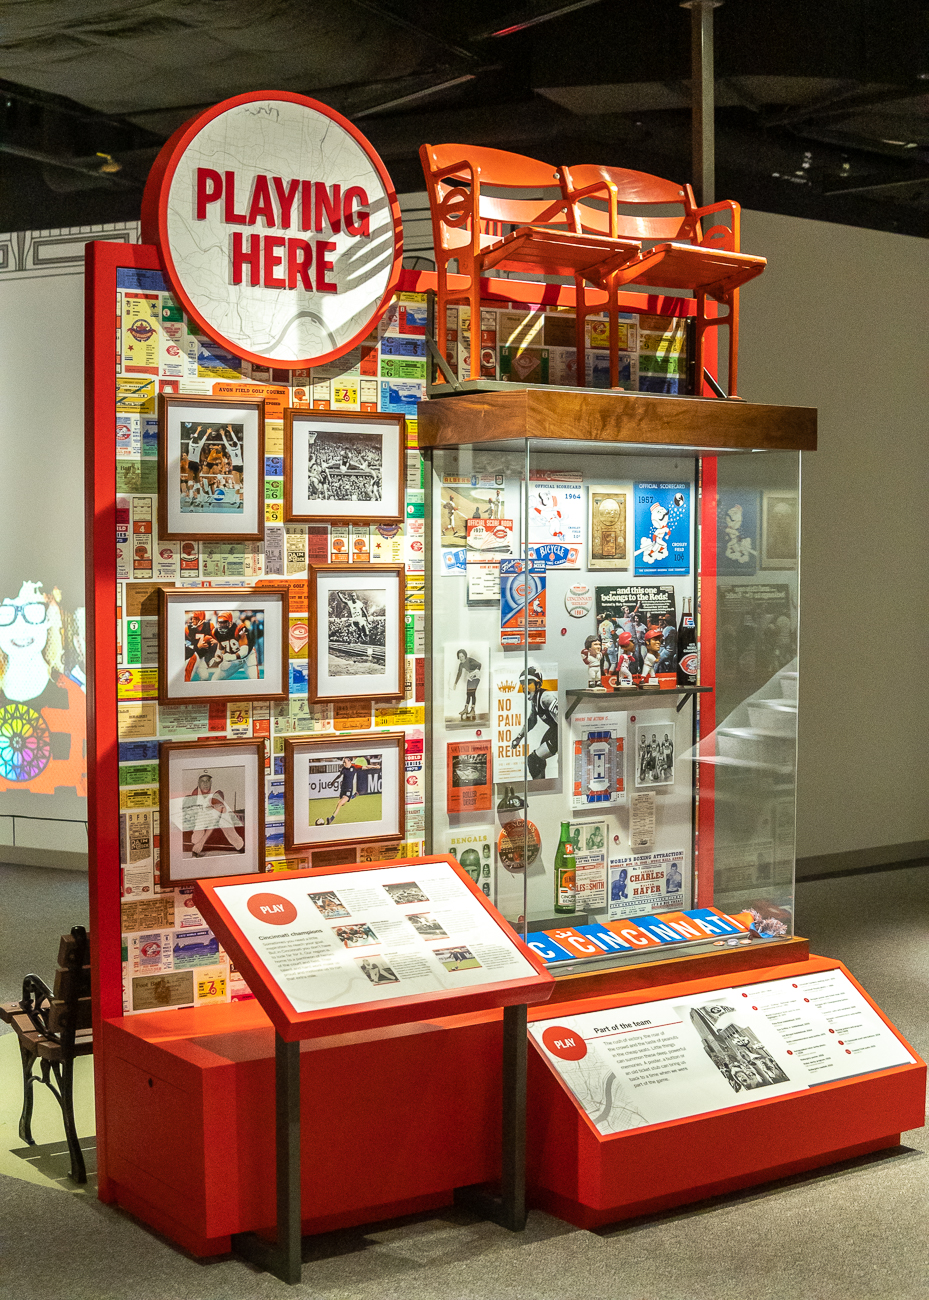 And finally, the 'Playing Here' display showcases Cincinnati sports history.{&nbsp;}/ Image: Phil Armstrong, Cincinnati Refined // Published: 10.23.20<p></p>